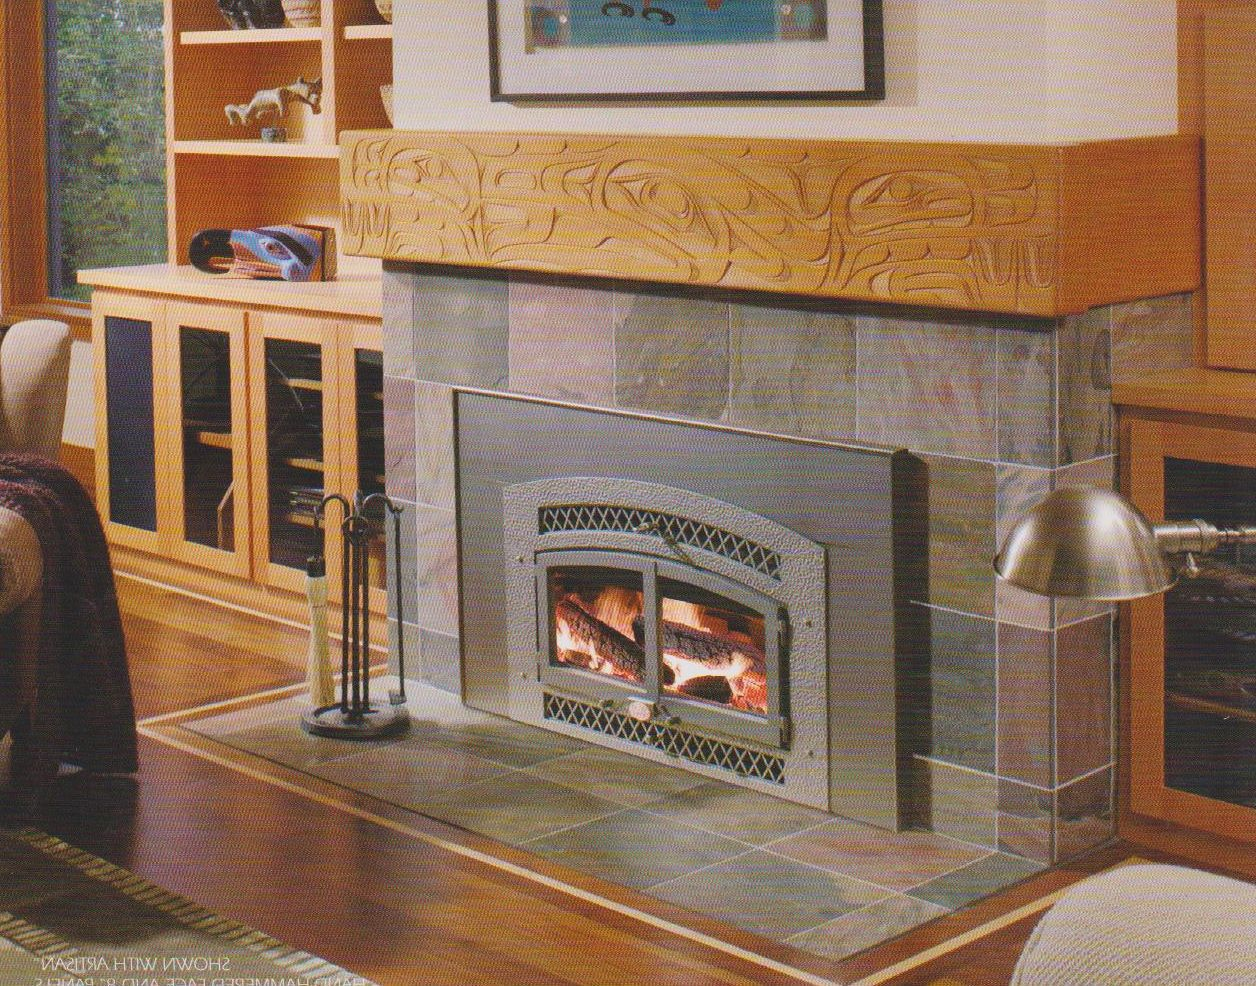 Interior Artistic Woodcarvings Burning Fireplace Insert On Stone